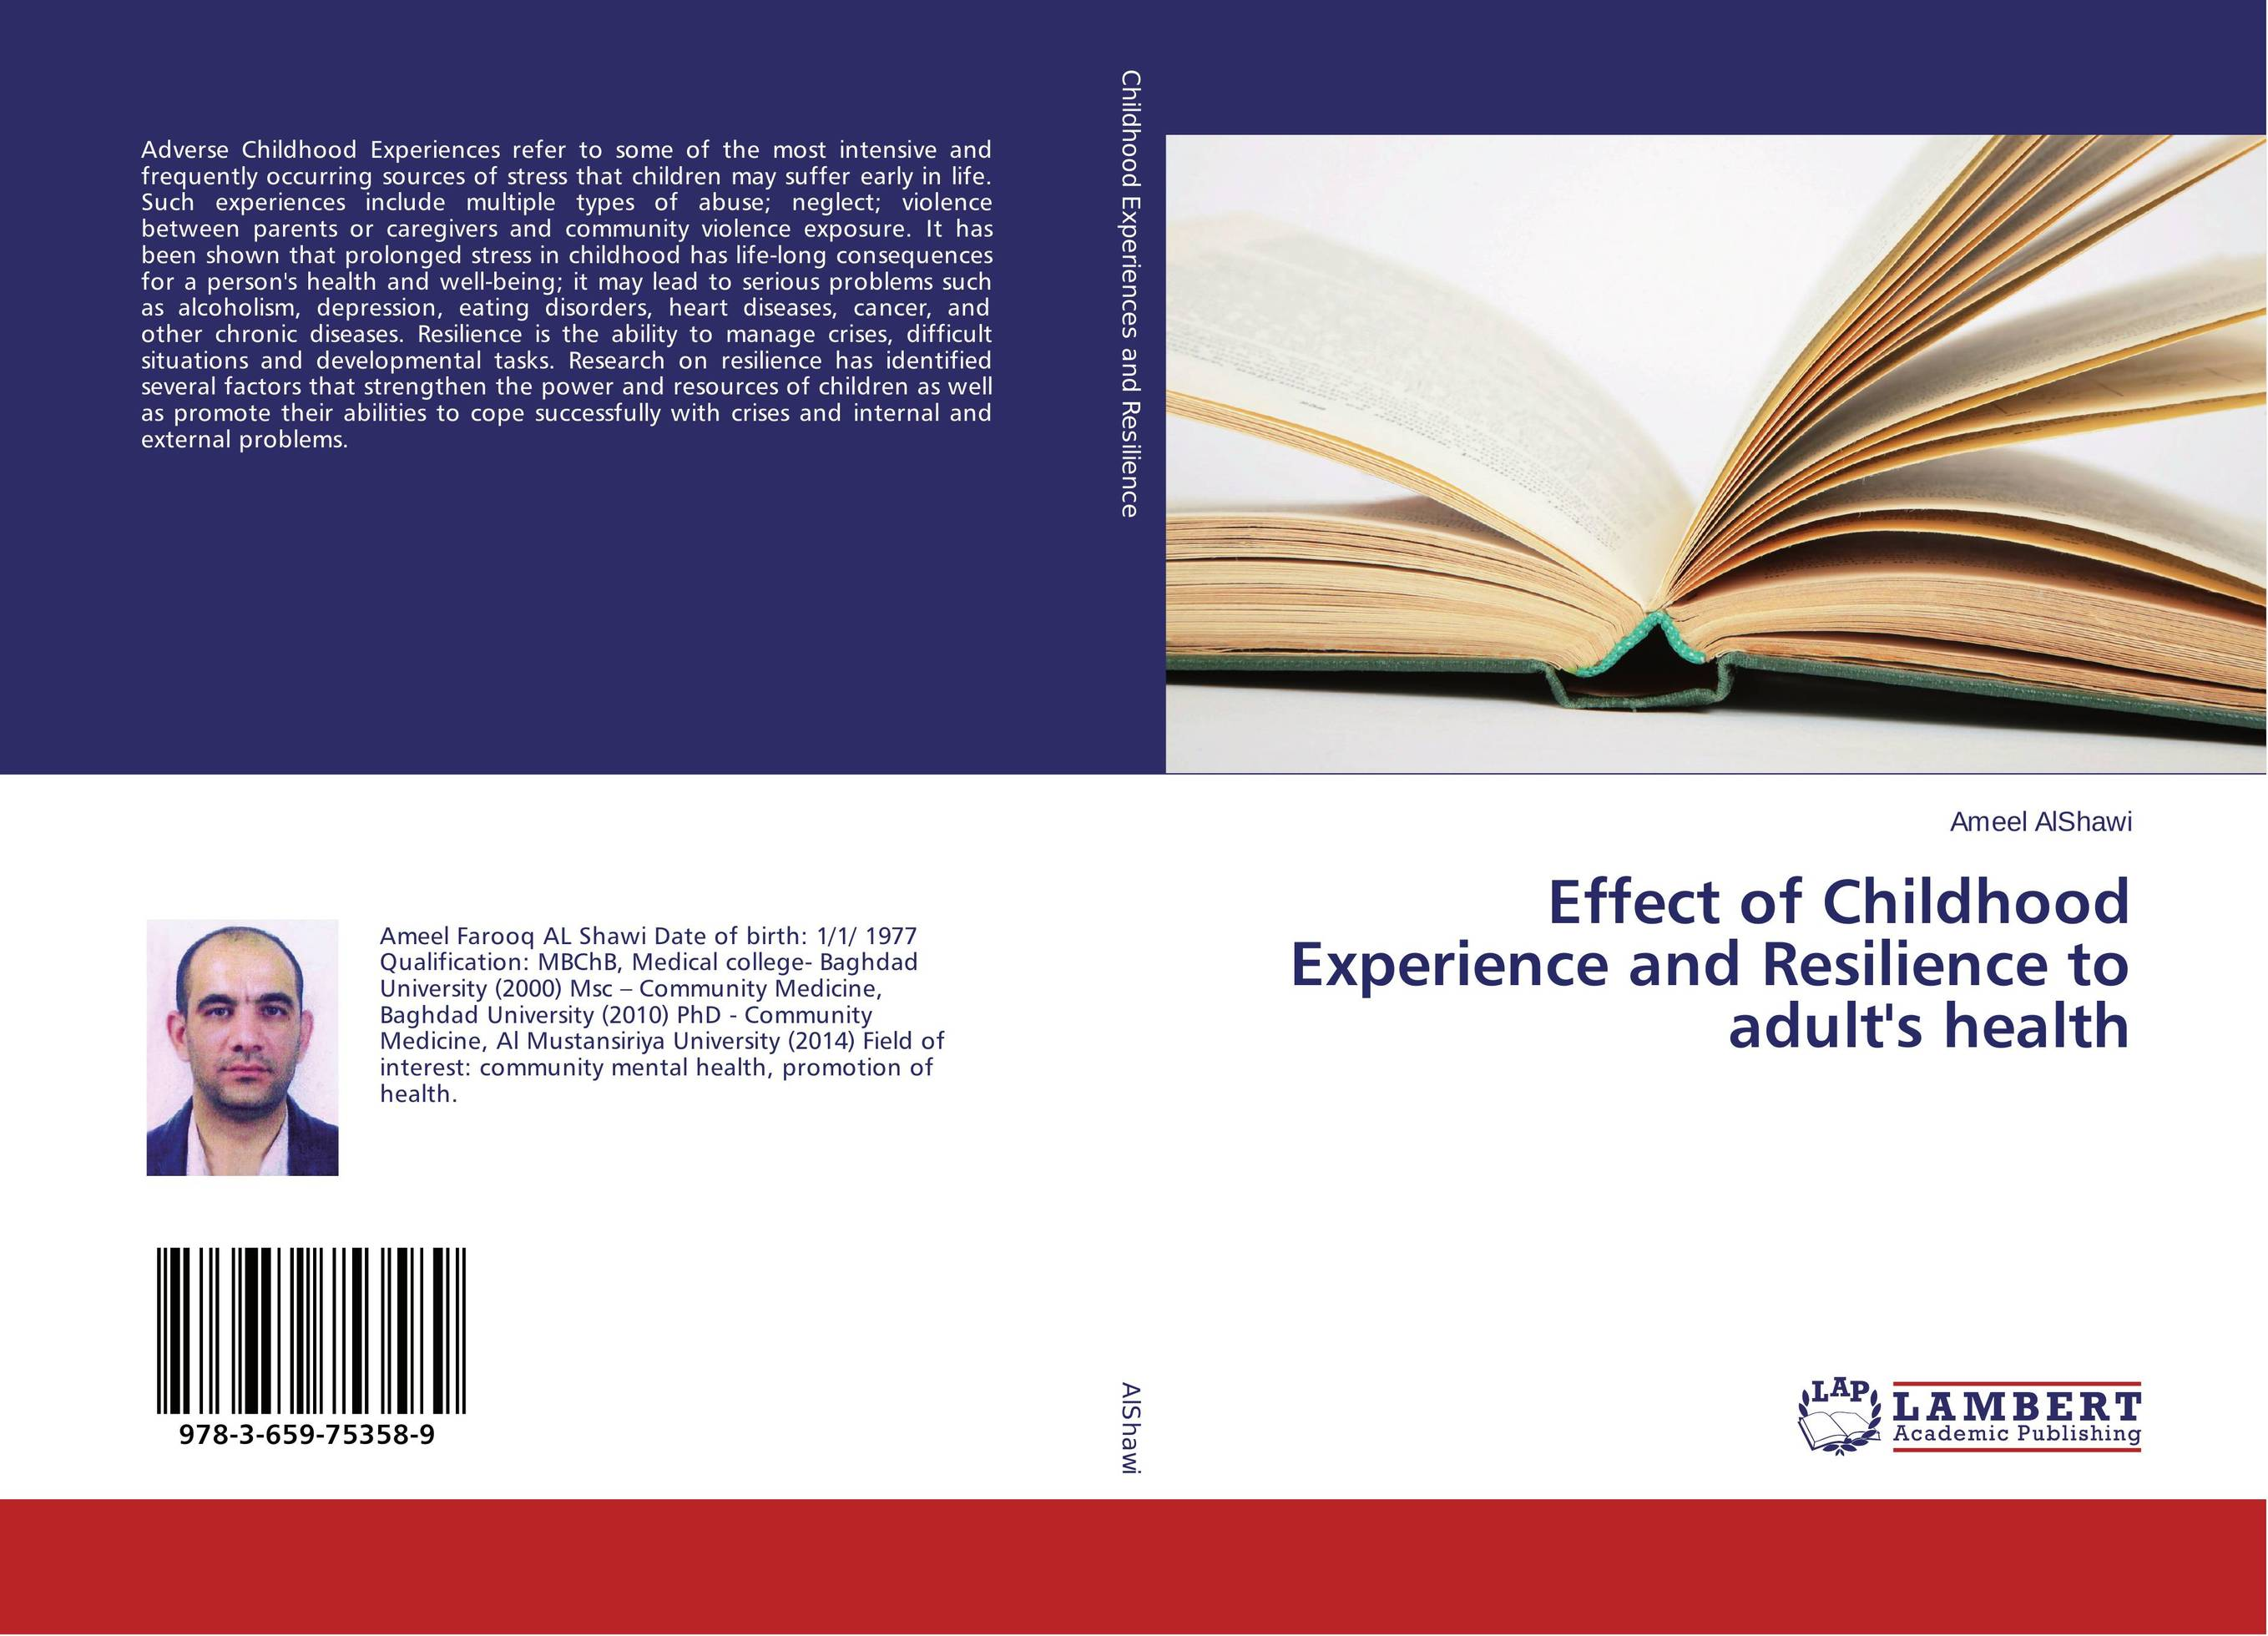 Effect of Childhood Experience and Resilience to adult's health helina befekadu the nature and effect of emotional violence